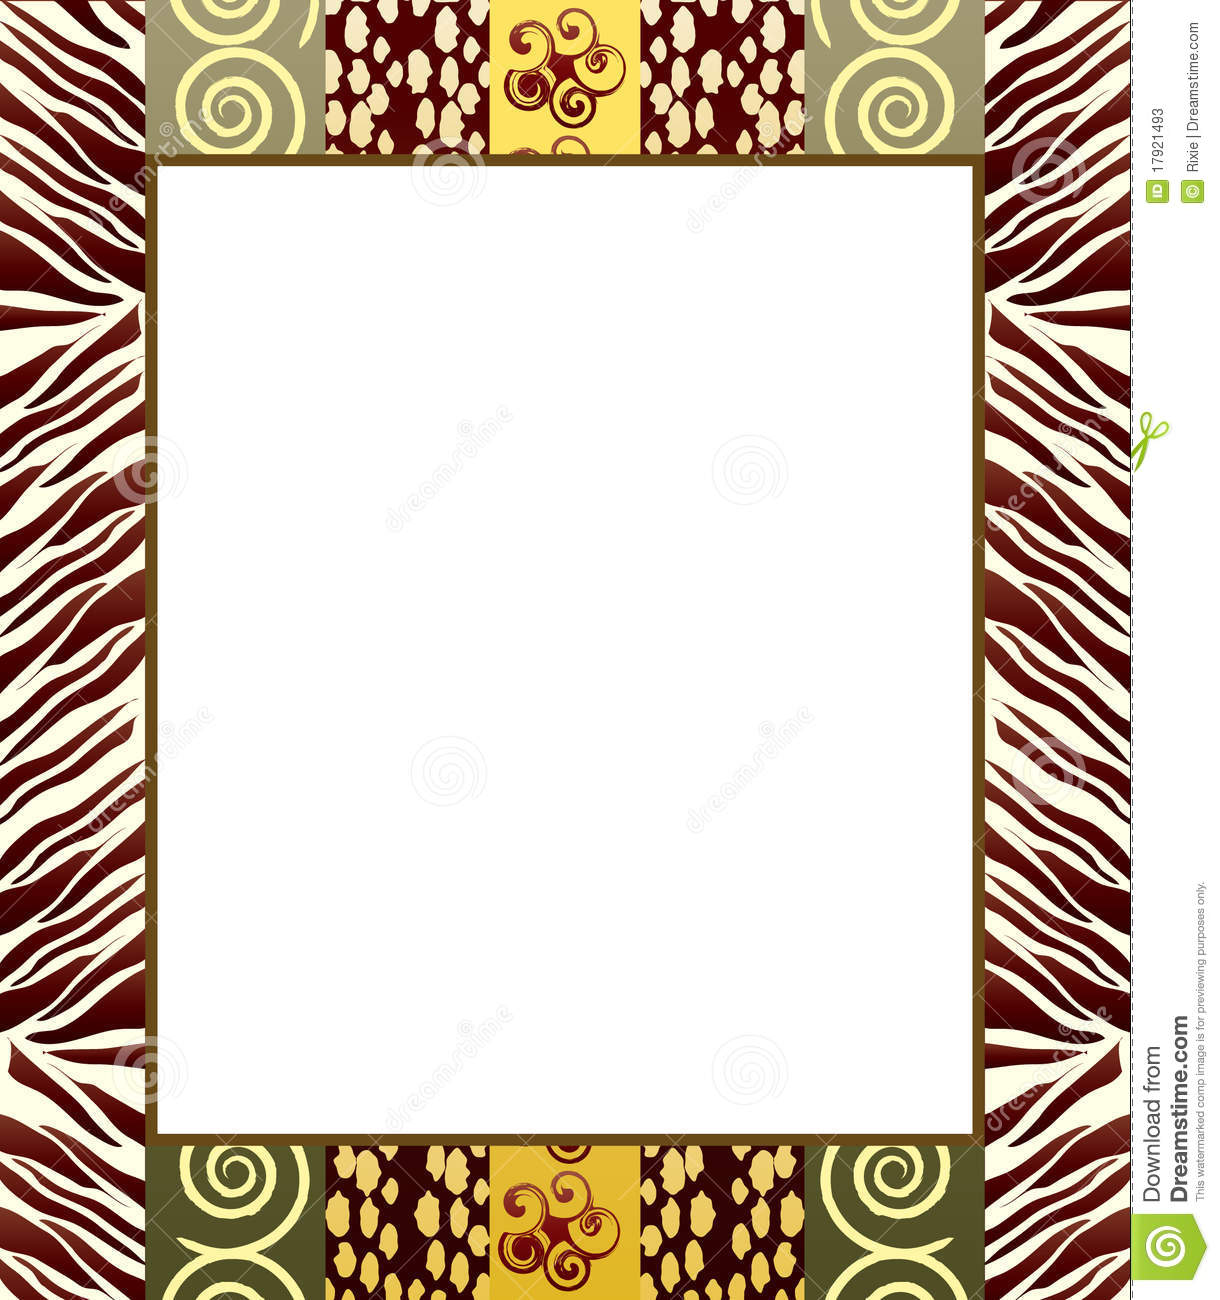 African Style Frame 2 Stock Photos Image 17921493